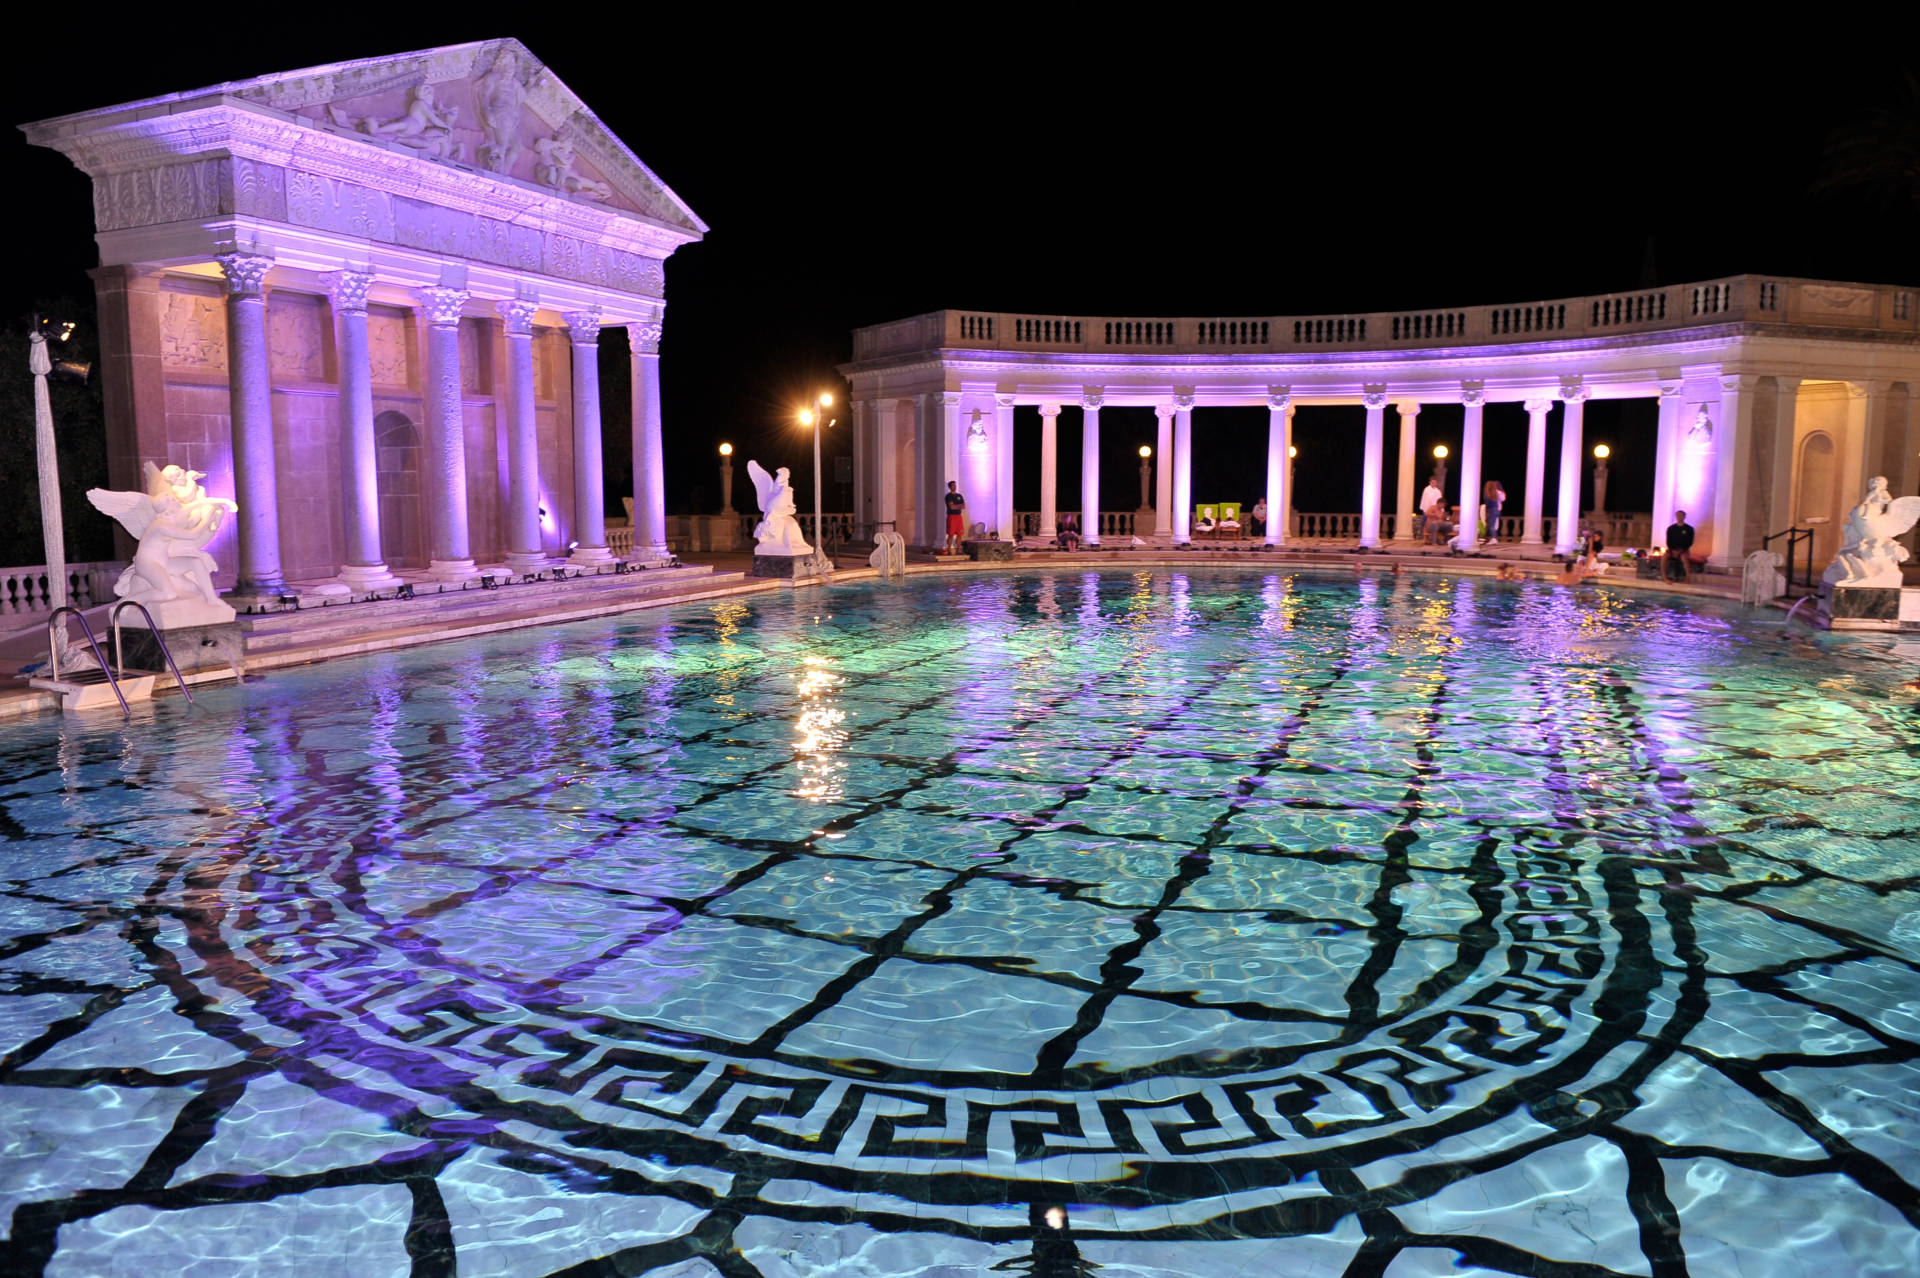 A view of Hearst Castle's Neptune Pool on September 7, 2013 in San Simeon. Steve Jennings/Getty Images